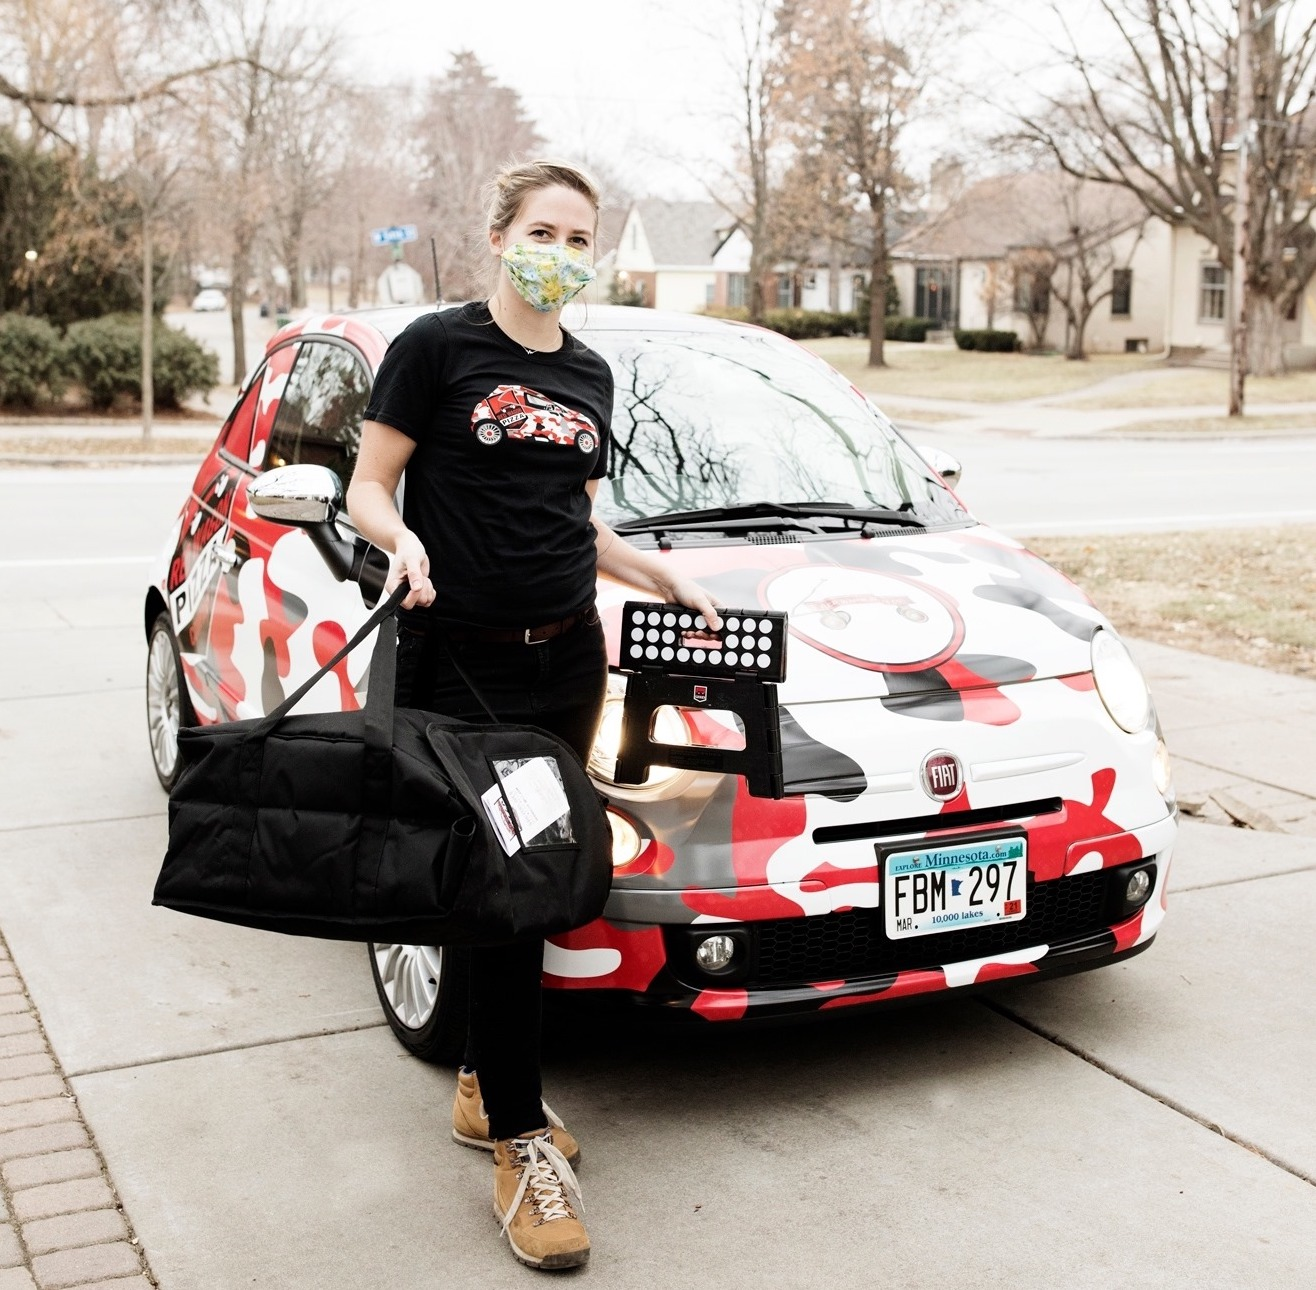 A woman carrying a pizza bag walks in front of a Fiat decorated with red, gray, and white camo pattern.